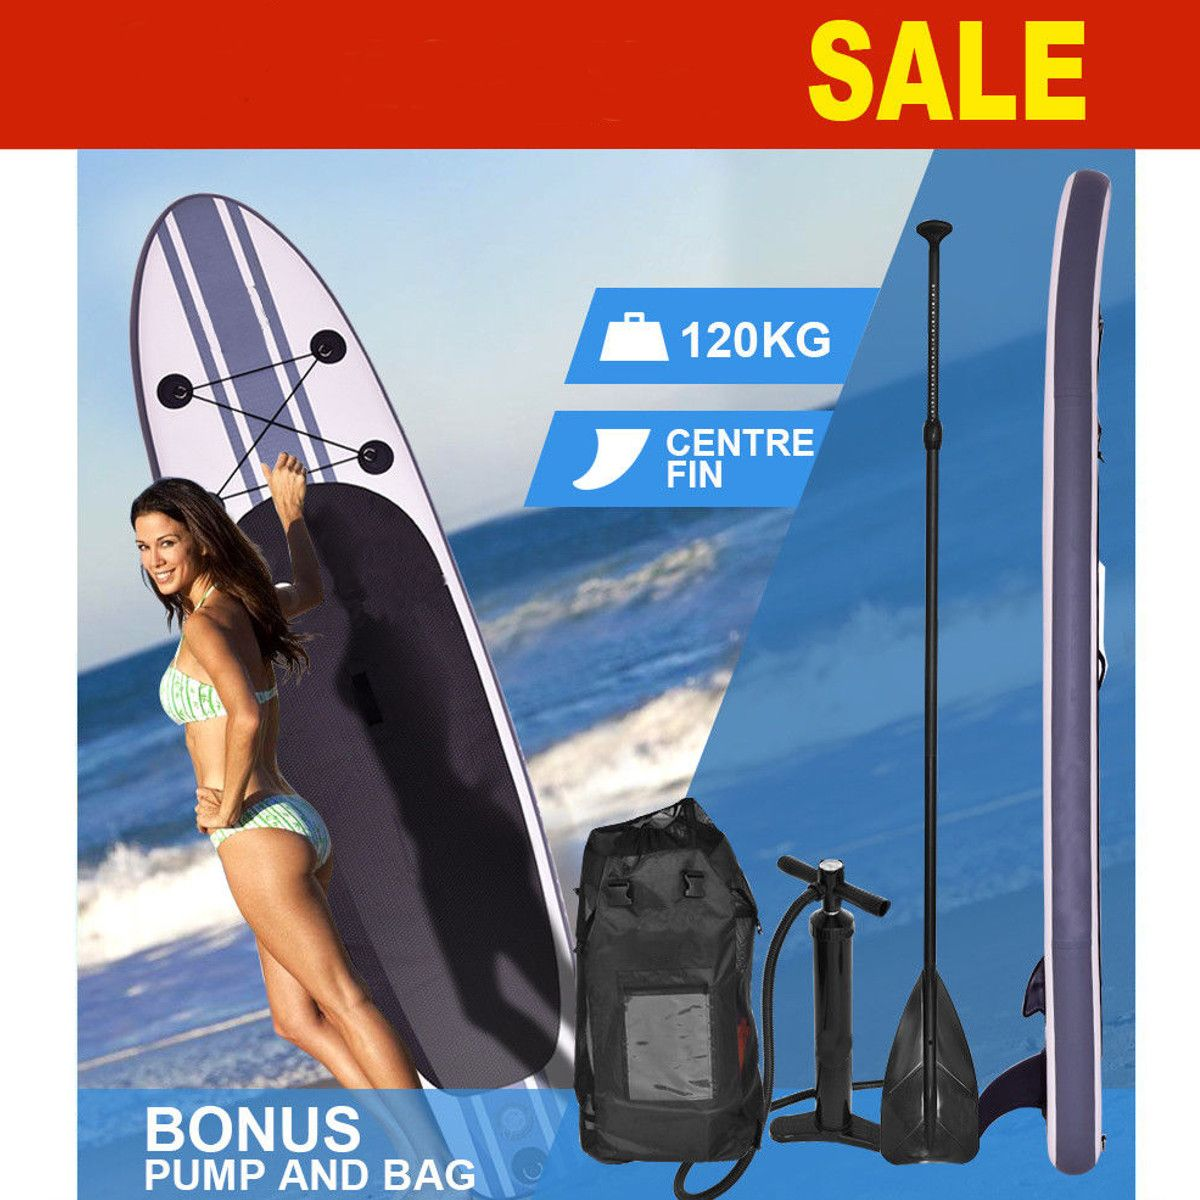 Gofun 335 * 76 * 15cm Stand Up Paddle Surfboard Inflatable Board SUP Set Wave Rider + Pump inflatable surf board paddle boat